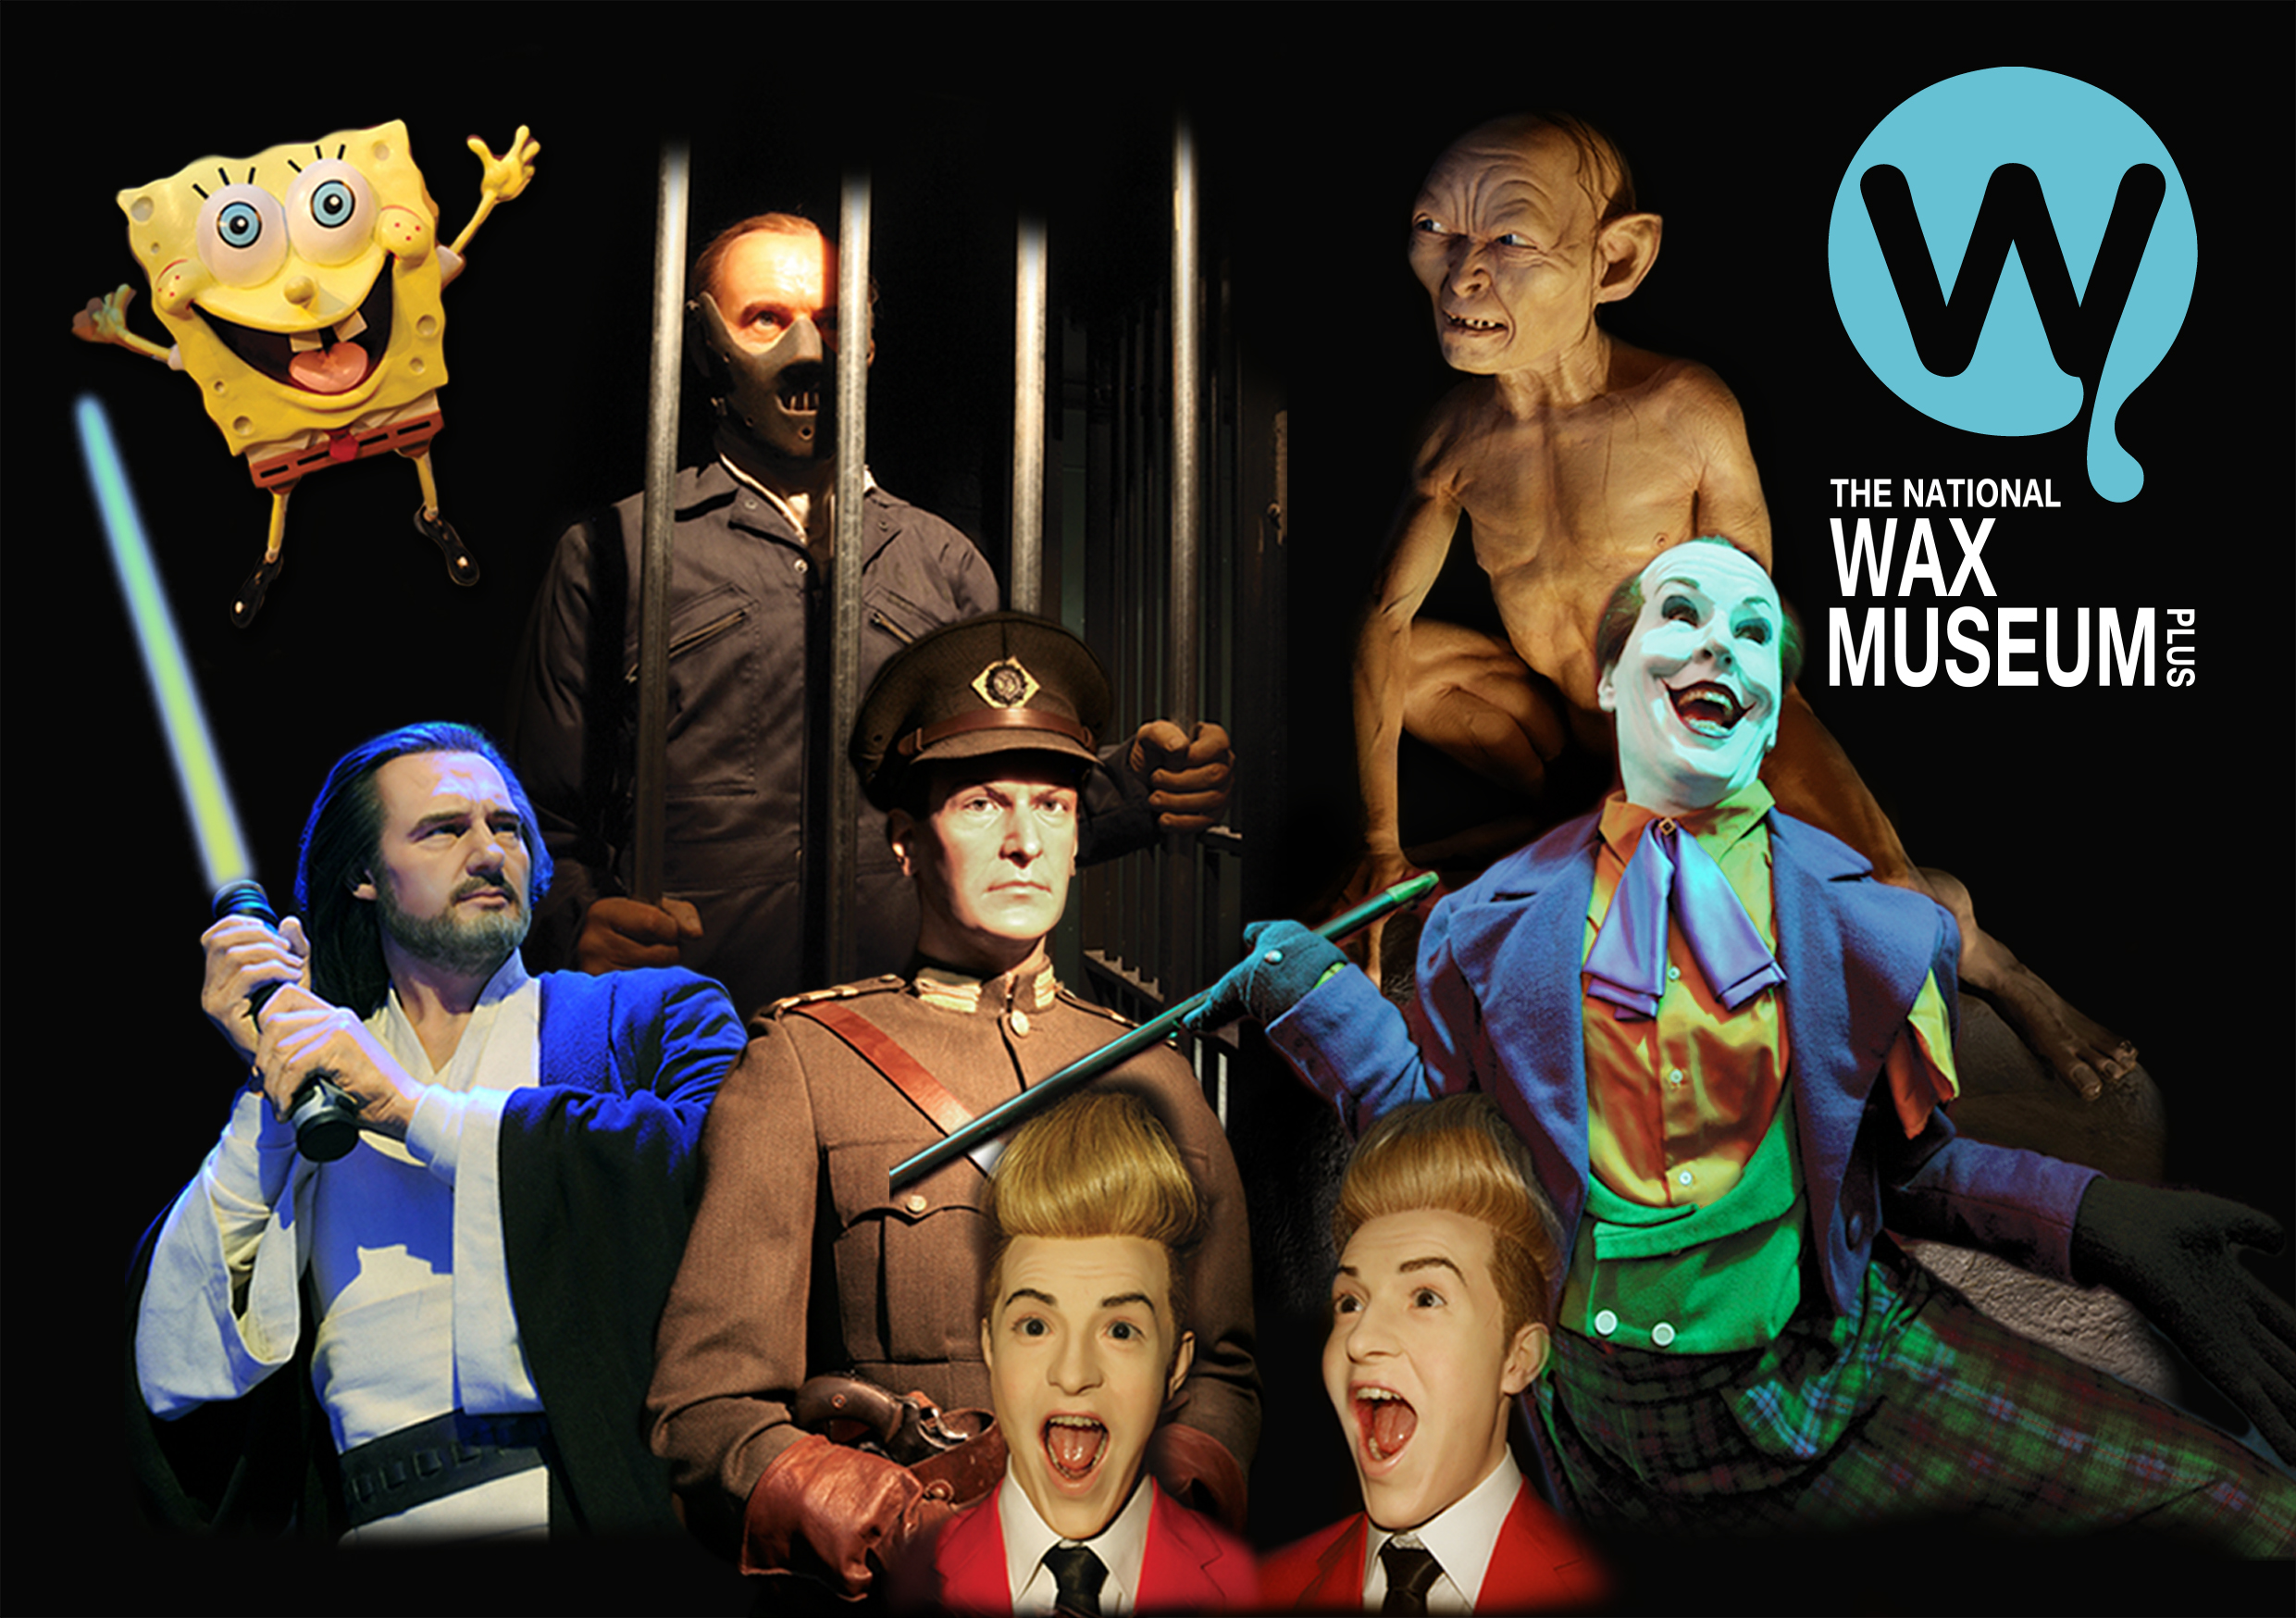 Things To Do in Dublin - National Wax Museum